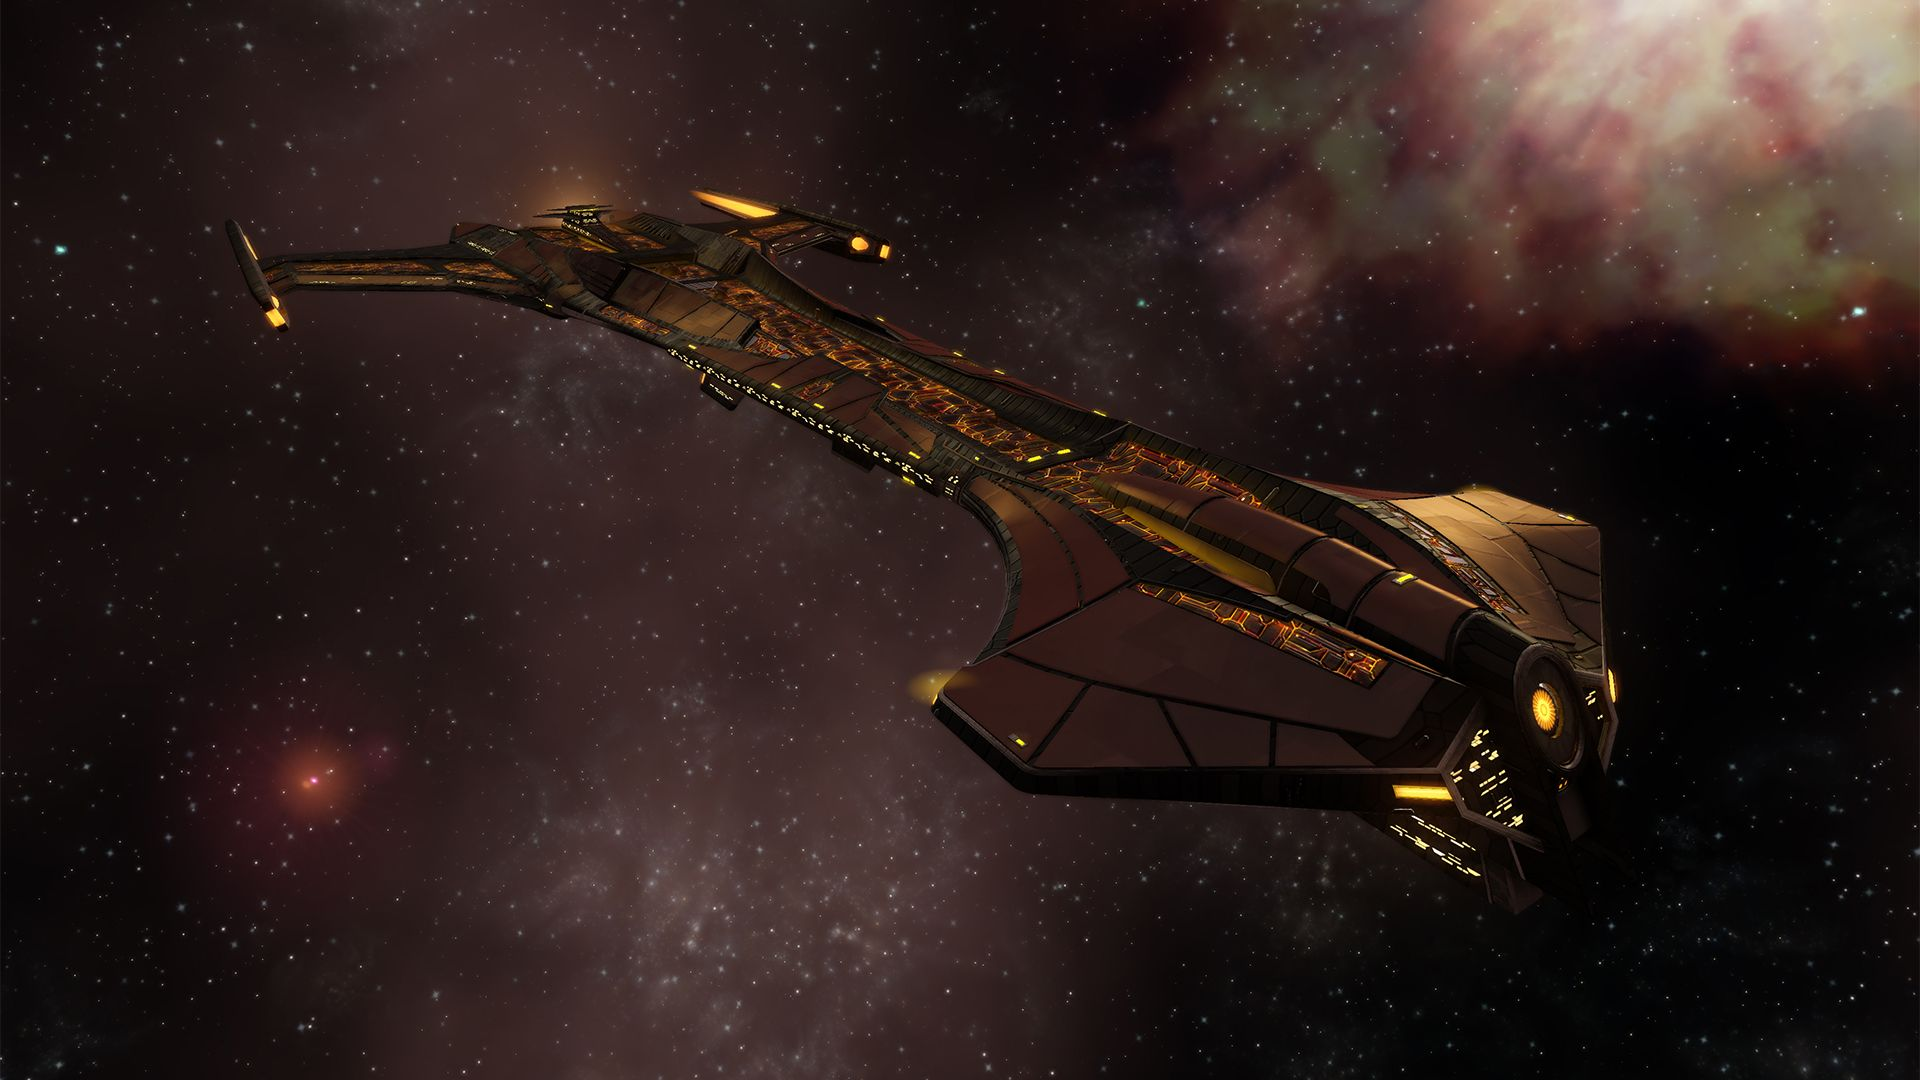 Klingon 26th Century Dreadnought